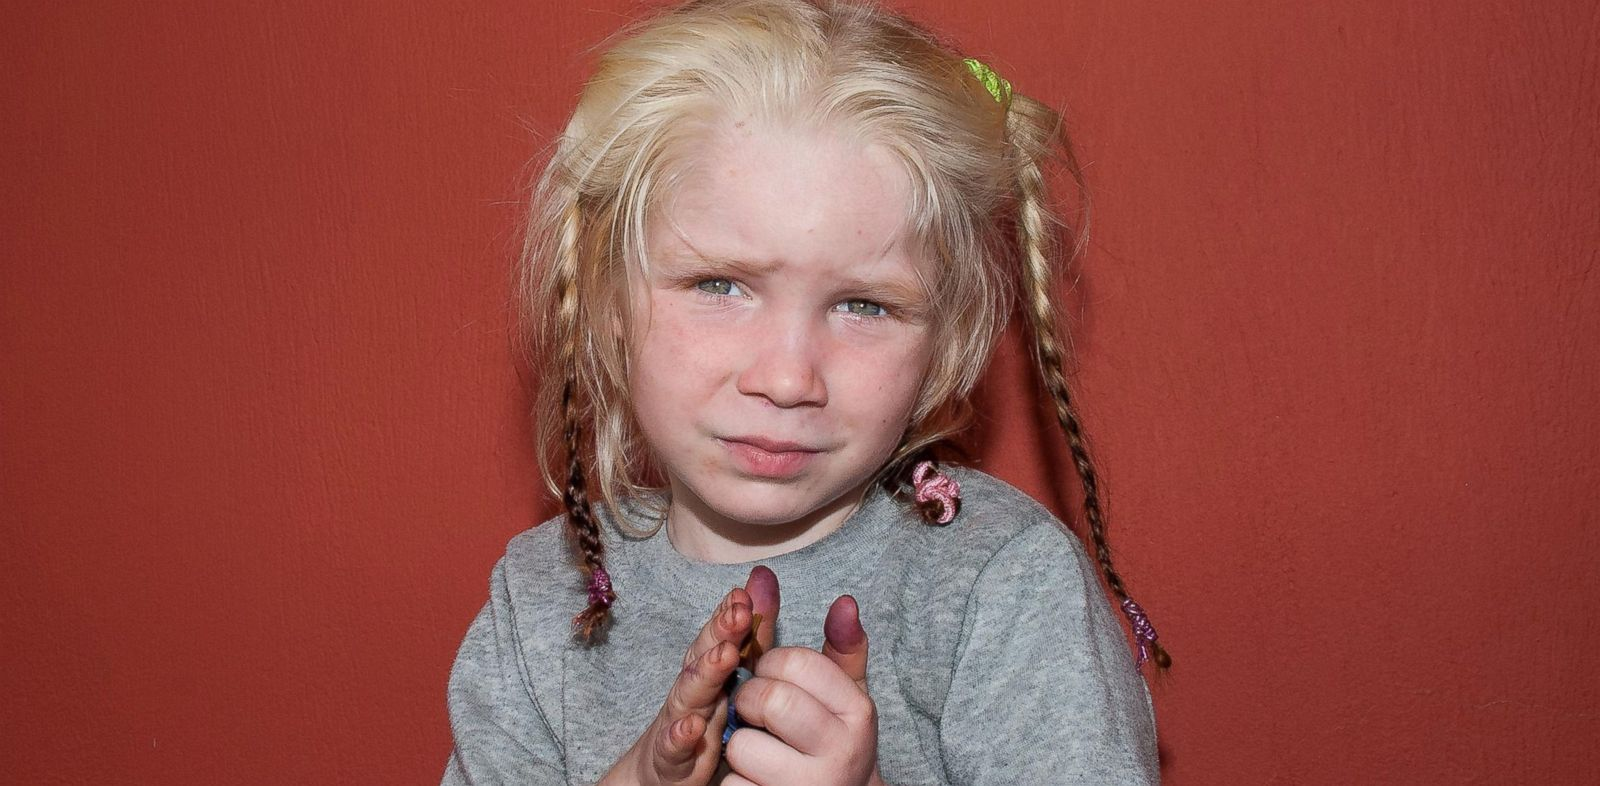 PHOTO: An unidentified child located near the town of Farsala, Greece.